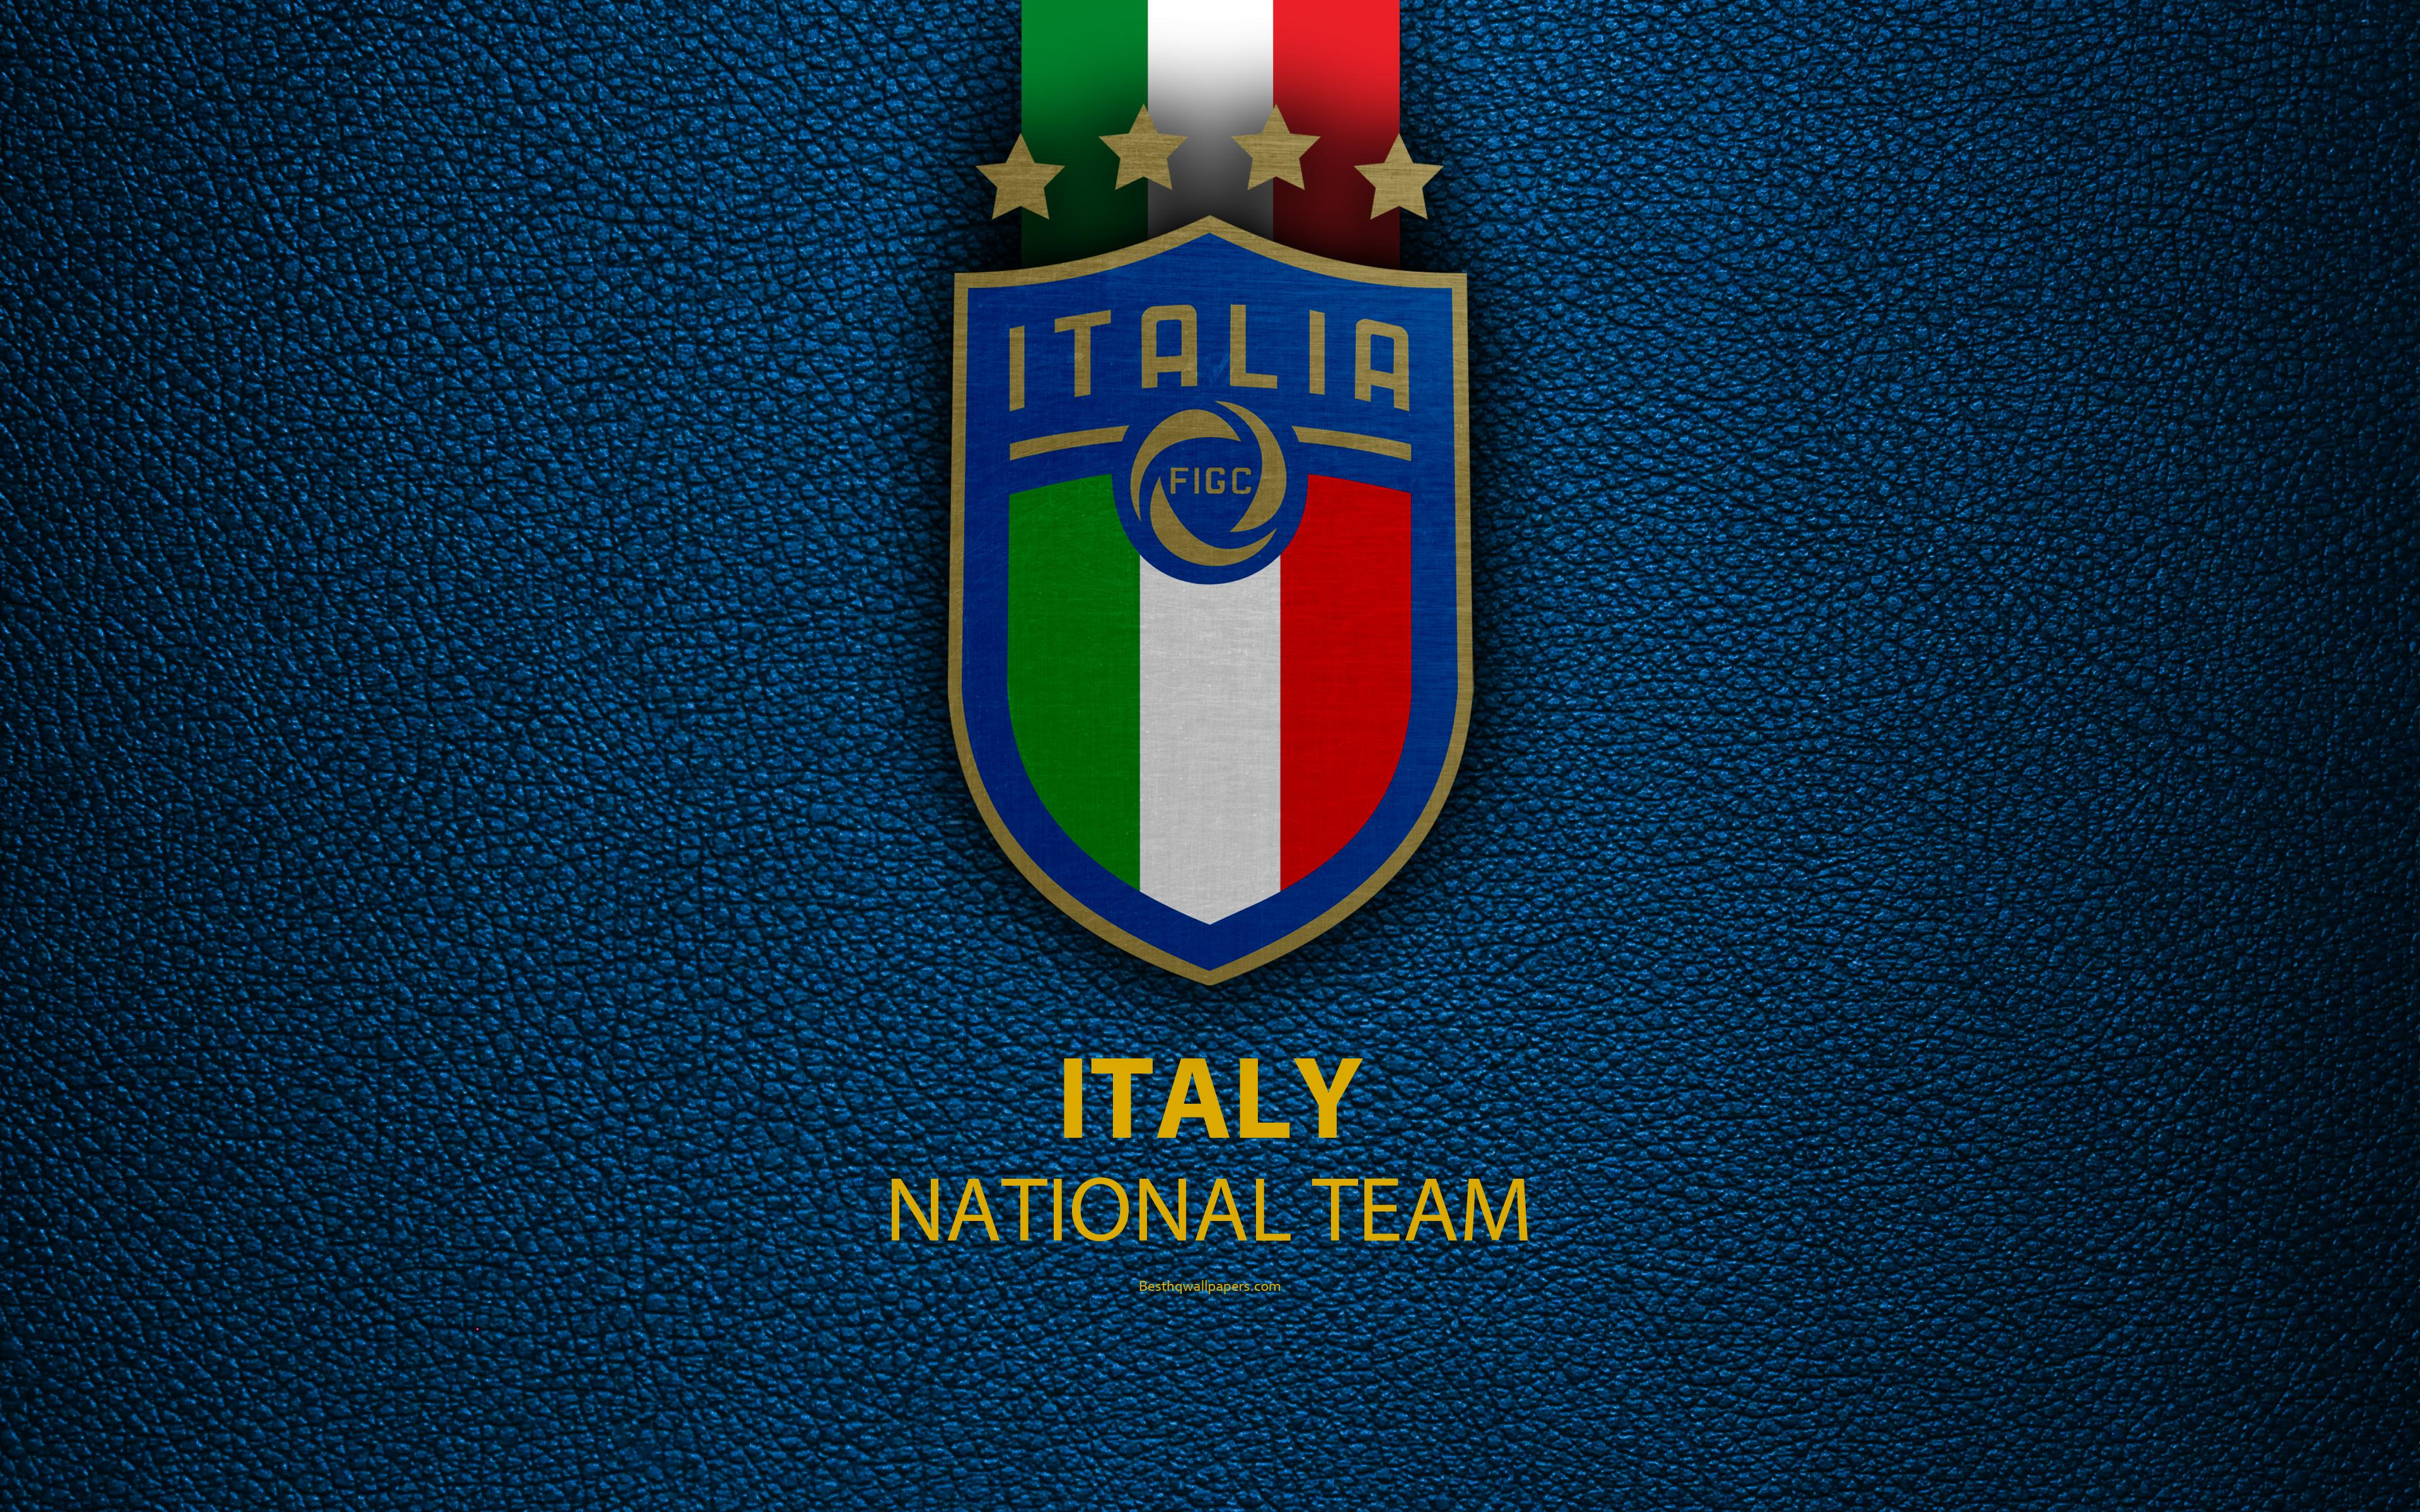 Download wallpapers Italy national football team, 4k, blue leather